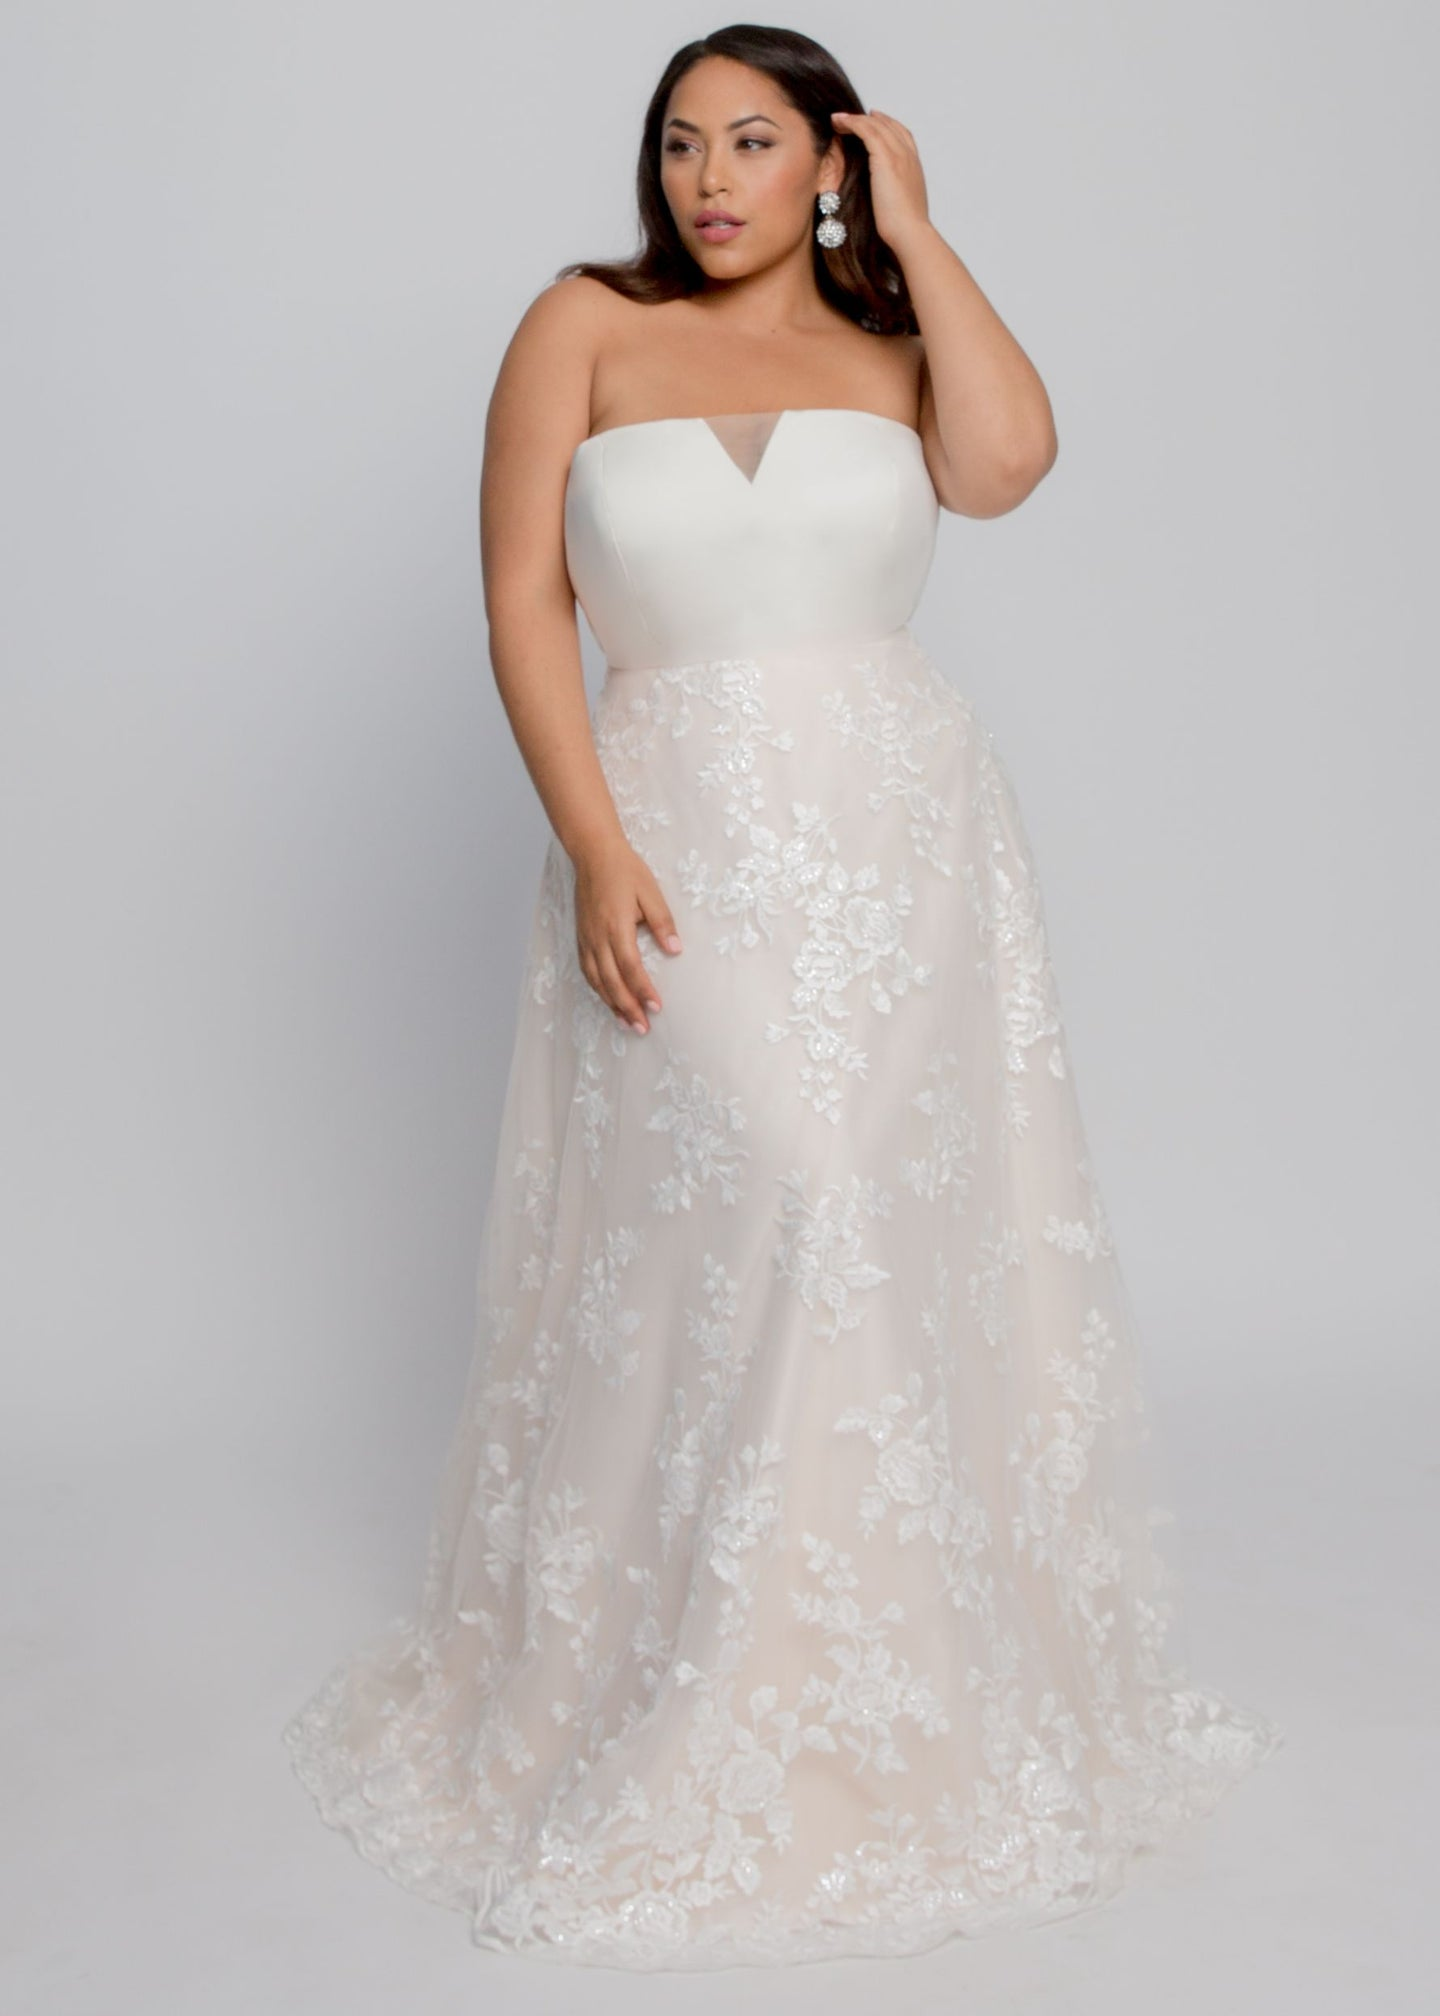 Gorgeous bridal gowns for all body shapes: plus size, curvy, or petite brides. Try on our wedding dresses at home. Size 0-30. Comfortable. Convenient. Fun. Lace or satin. Mermaid or A-line. Straight across neckline with lunging tulle panel adds a modern touch to gorgeous lace over an A line skirt. Blooming lace cascades over the blush lining to the gathered tulle hem and elegant hem.